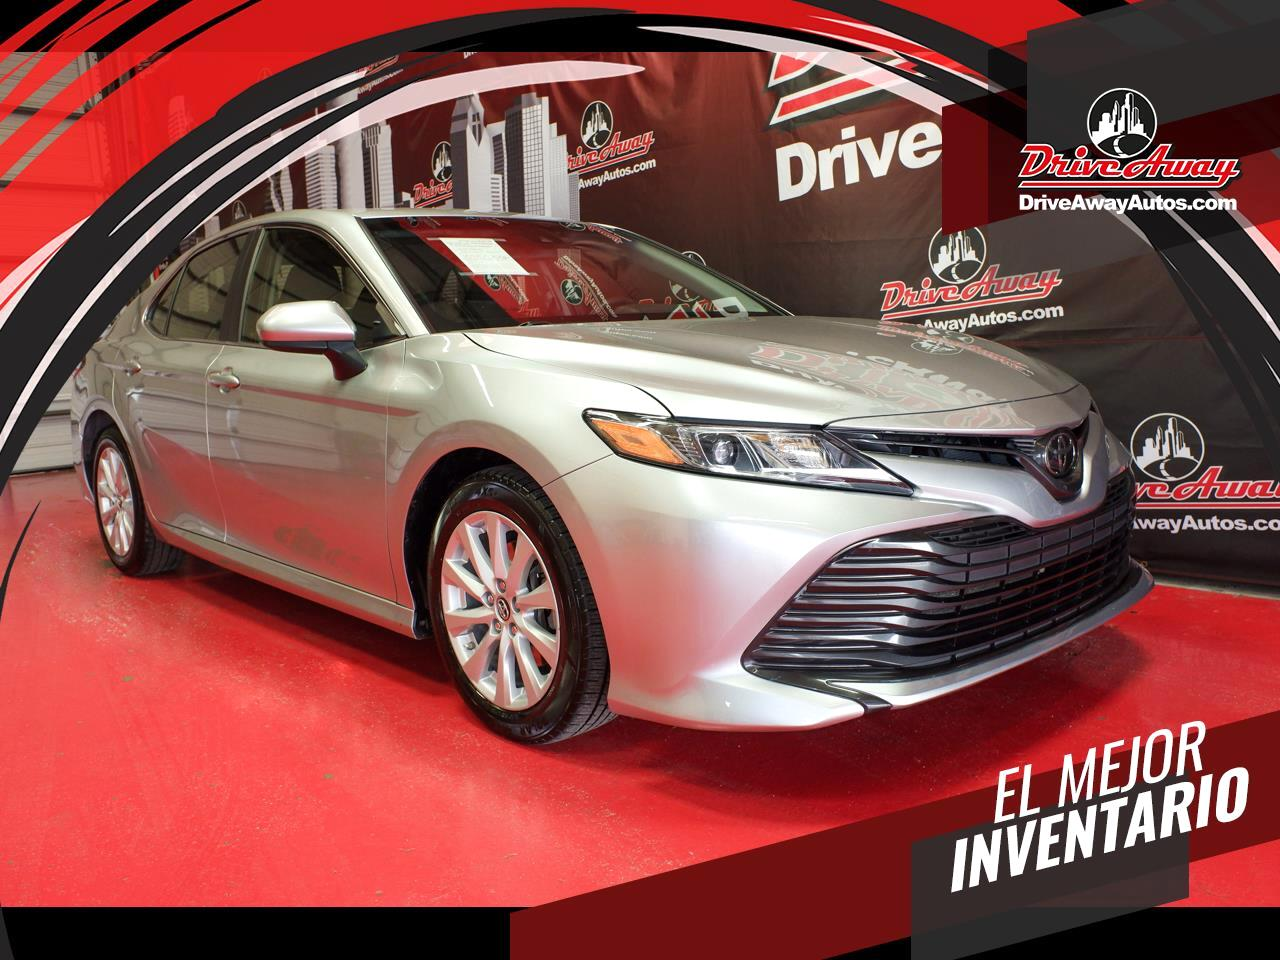 used 2018 toyota camry xle auto natl for sale in houston tx 77076 drive away autos drive away autos